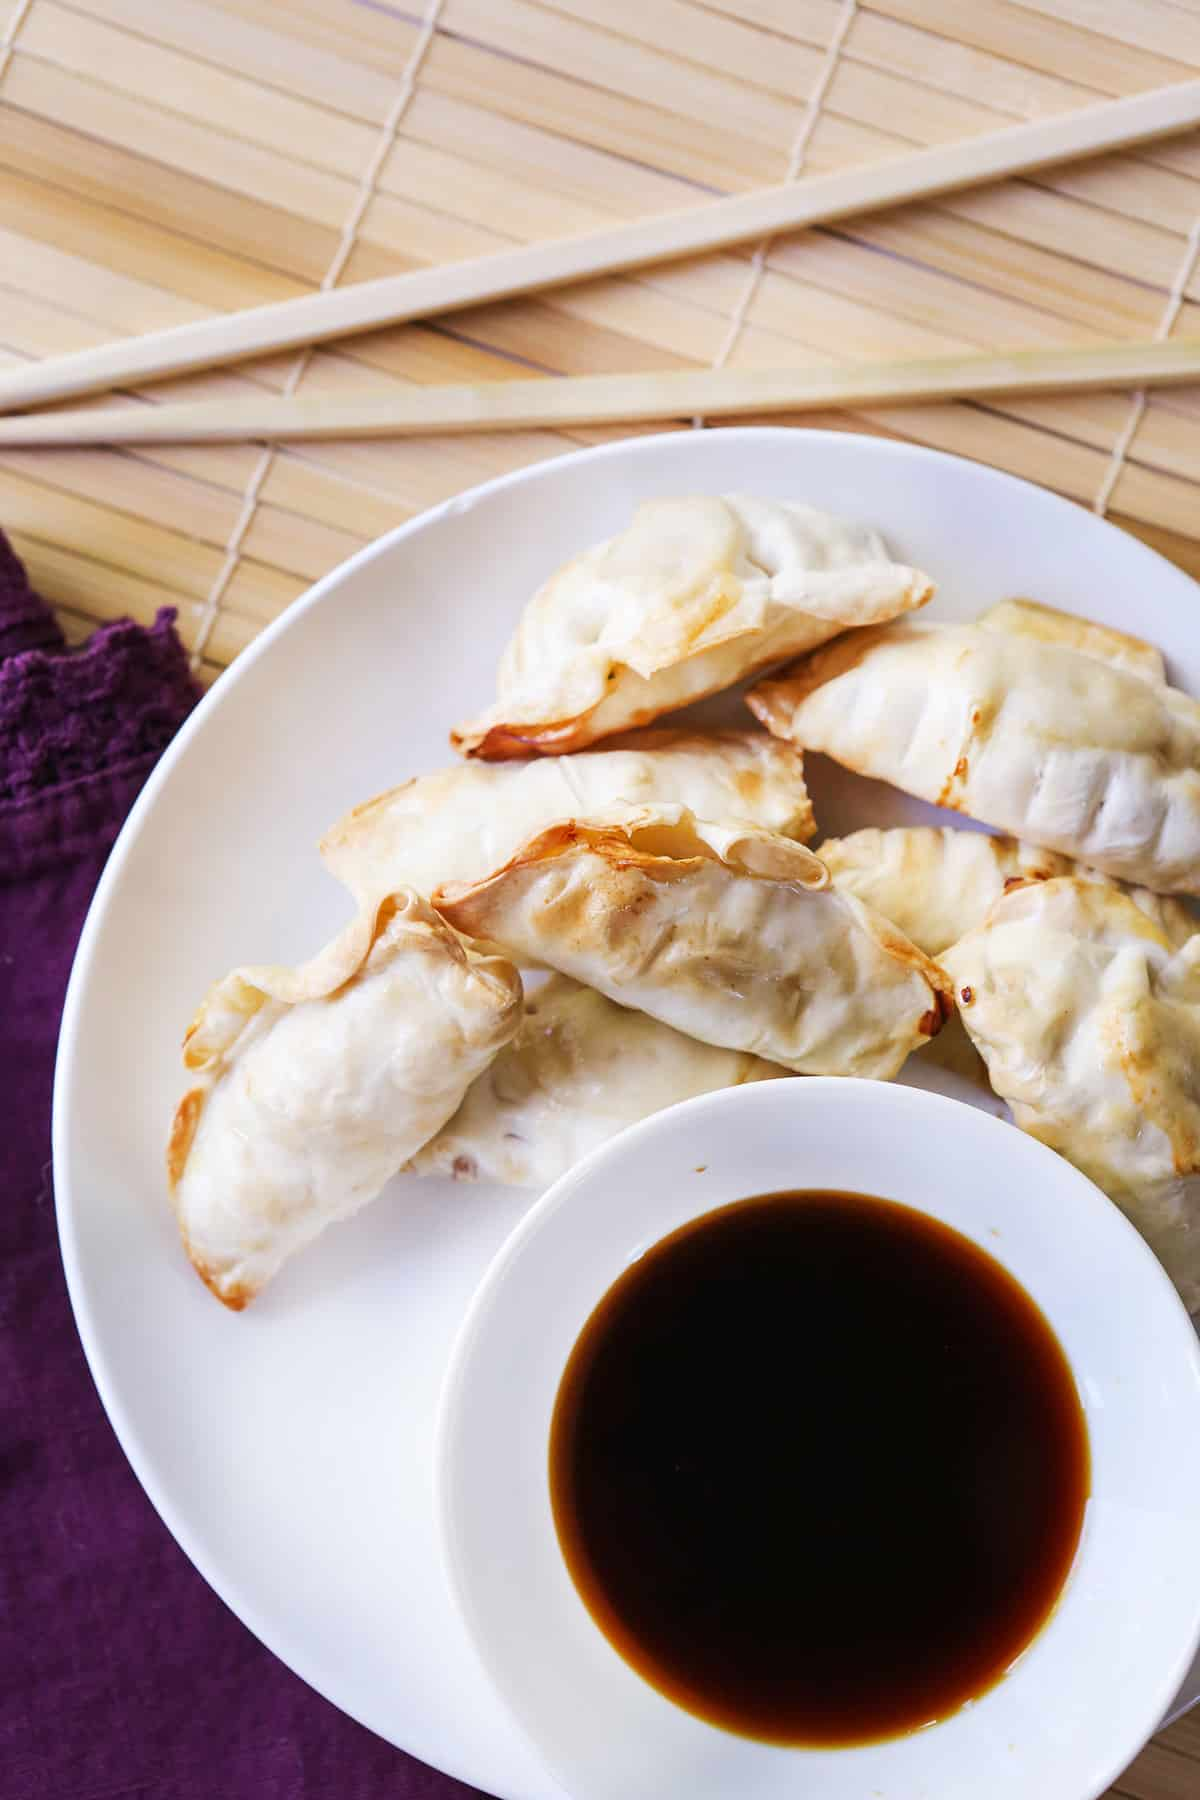 Top view of dumplings on a plate sitting next to chopsticks and soy sauce.